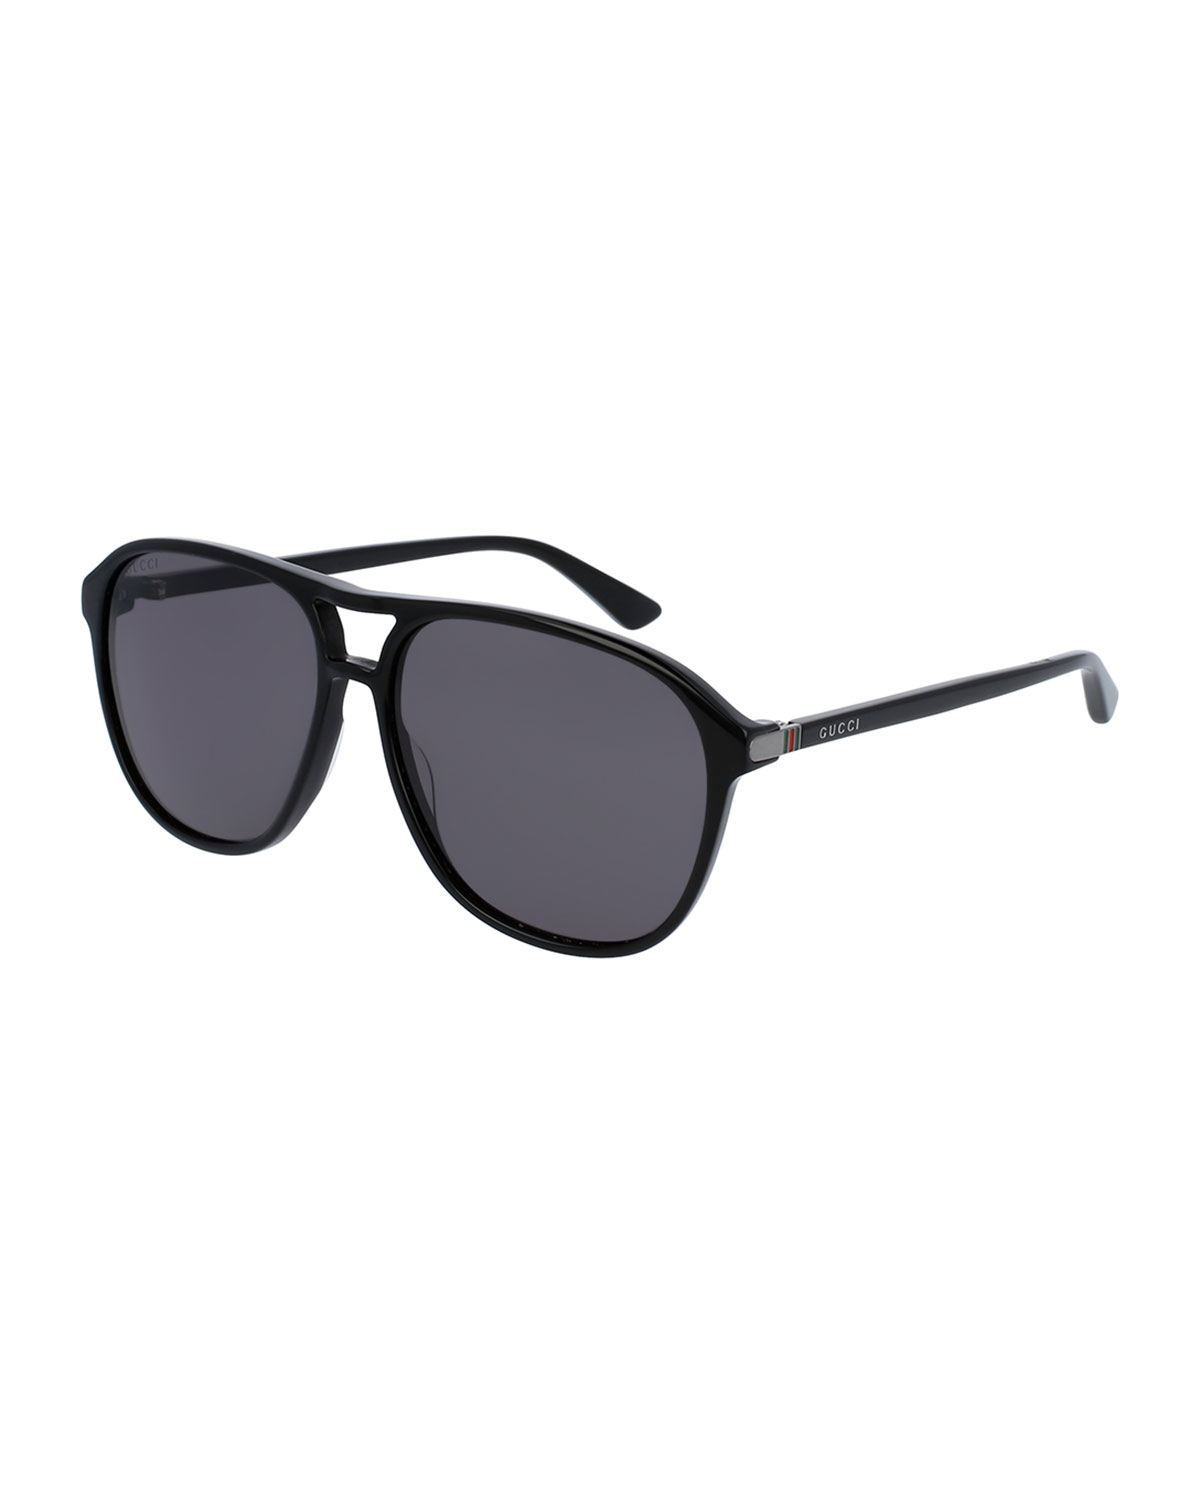 c385eedecfe Gucci Men s Acetate Aviator Sunglasses